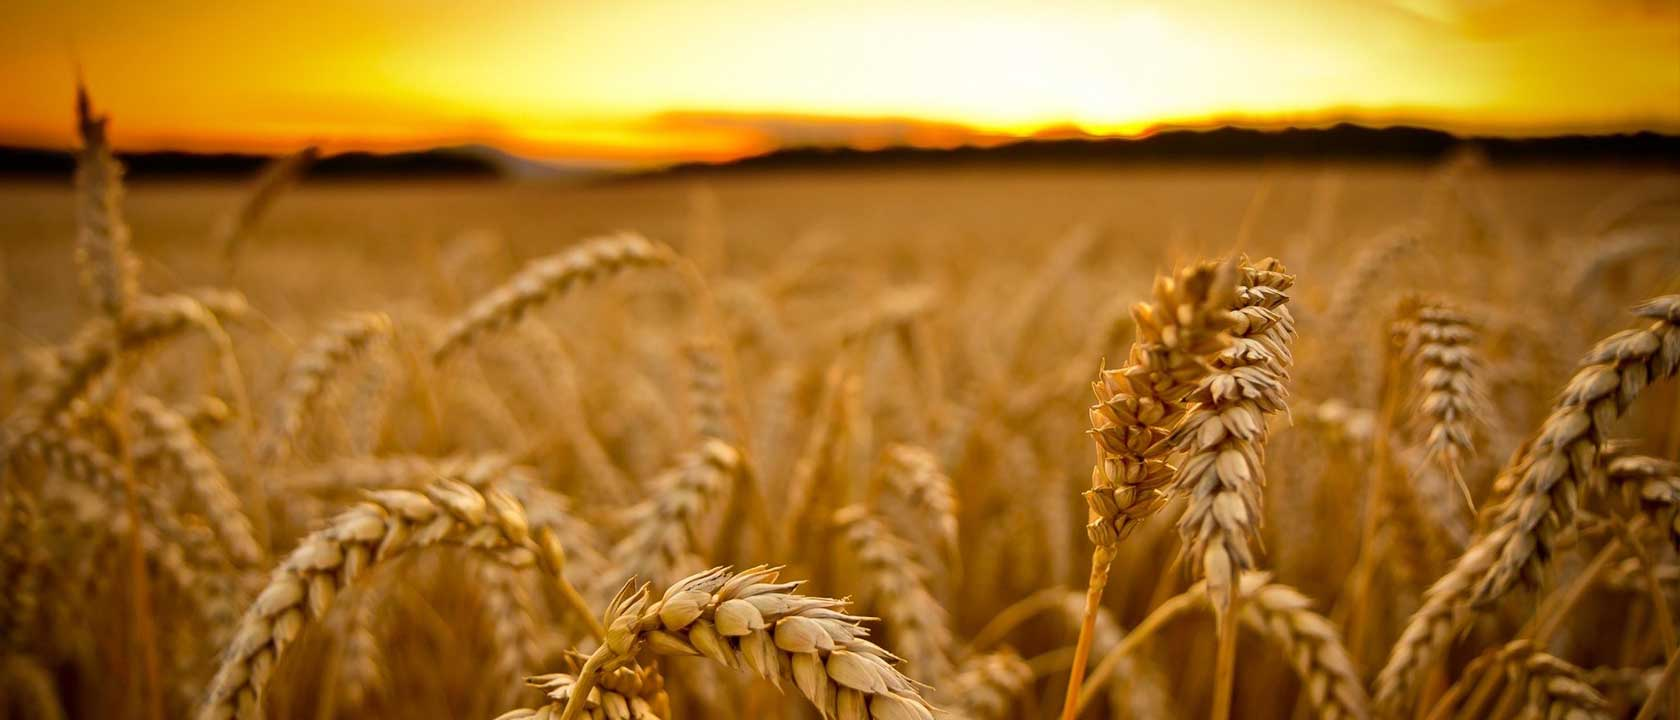 Wheat 150% increase in production rate